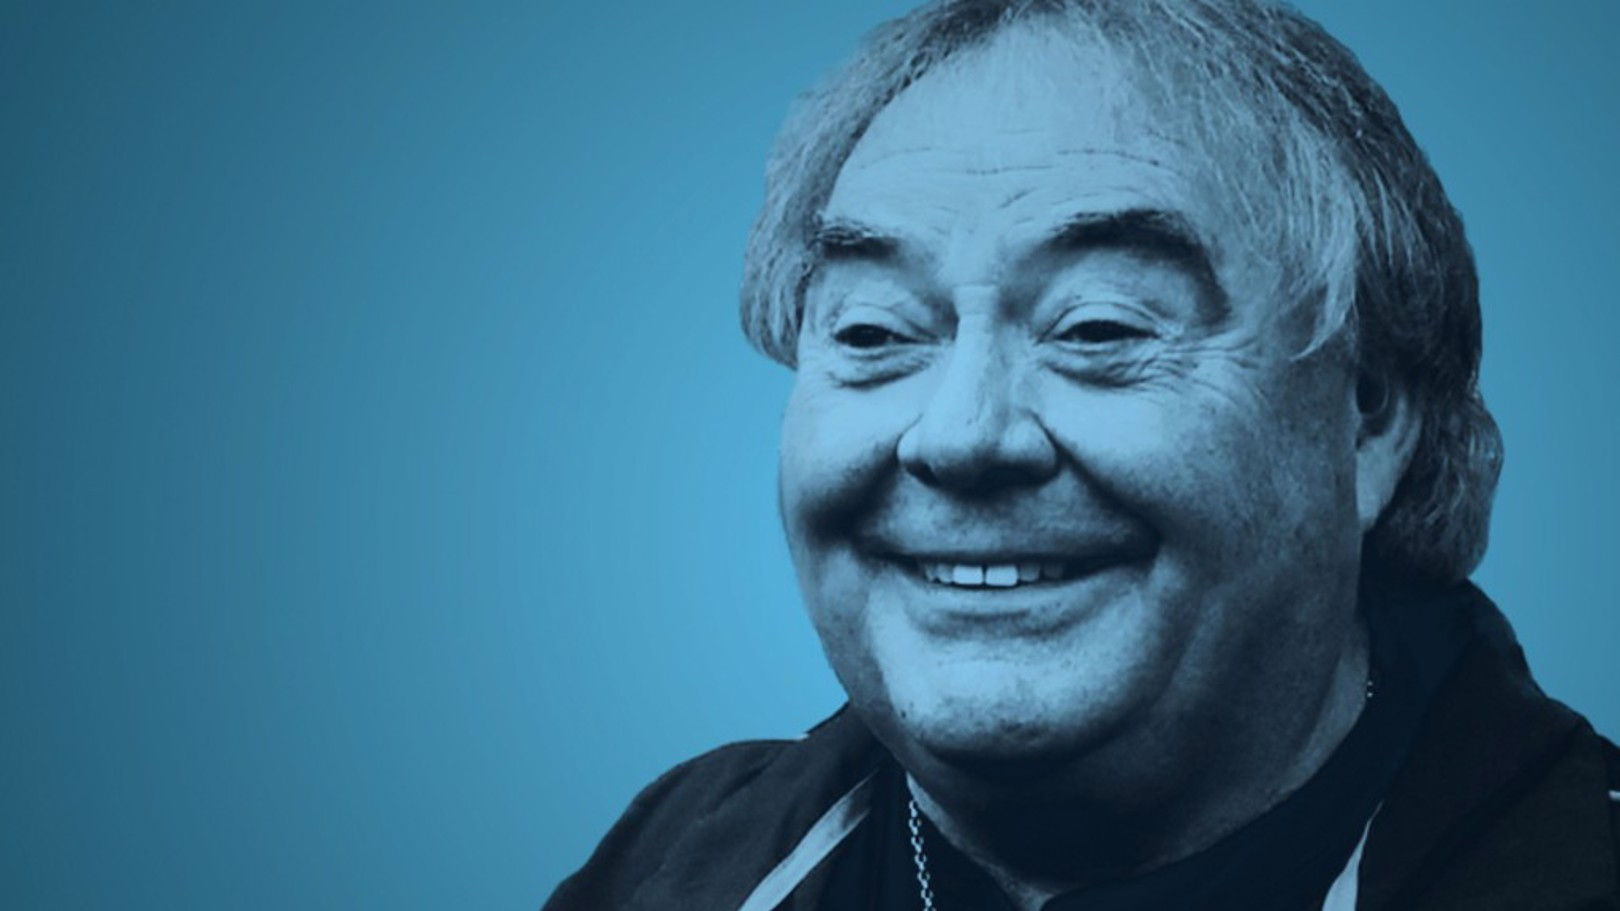 City pay tribute to Eddie Large